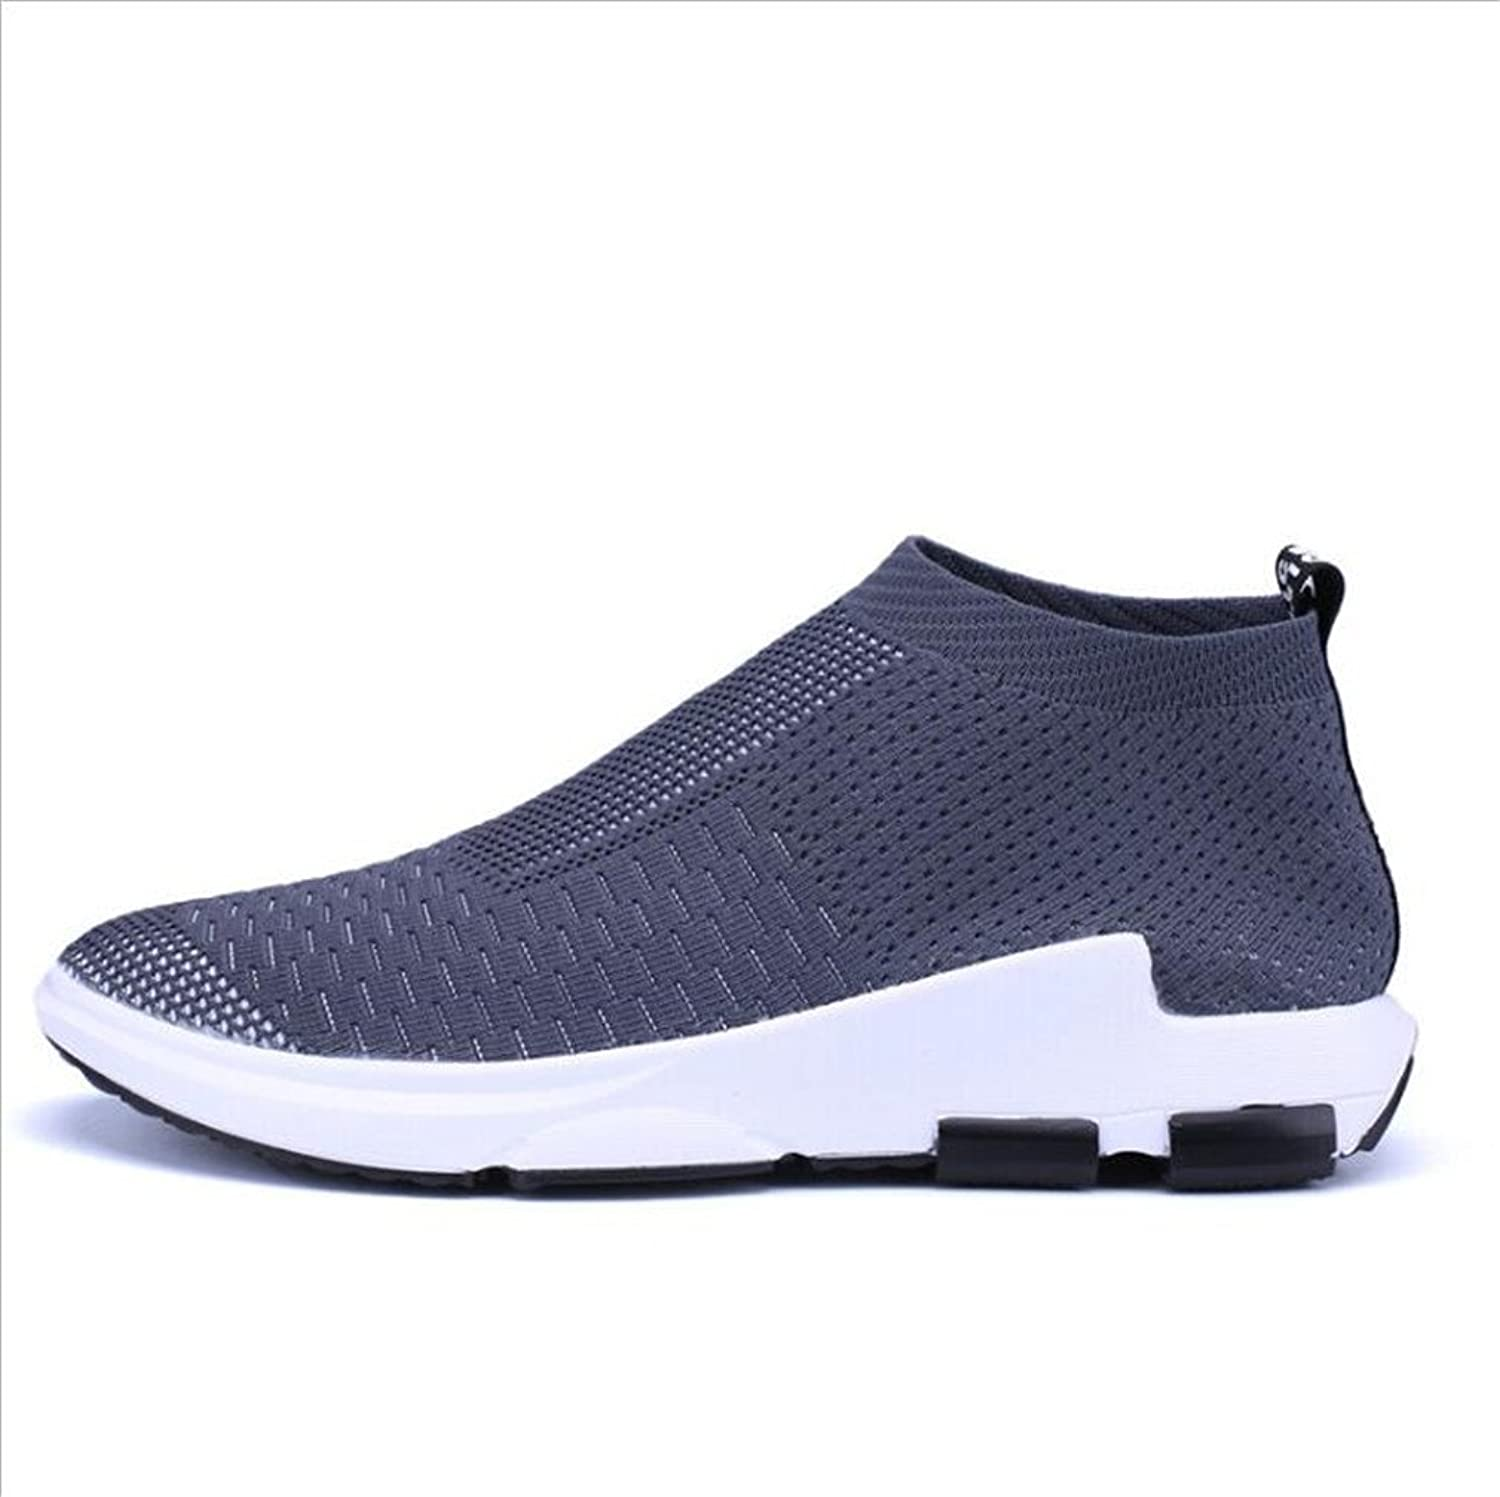 BIANJESUS Men's Casual Sports shoes Have Breathable And Comfortable Deodorizing Function, Let You Wear More Comfortable